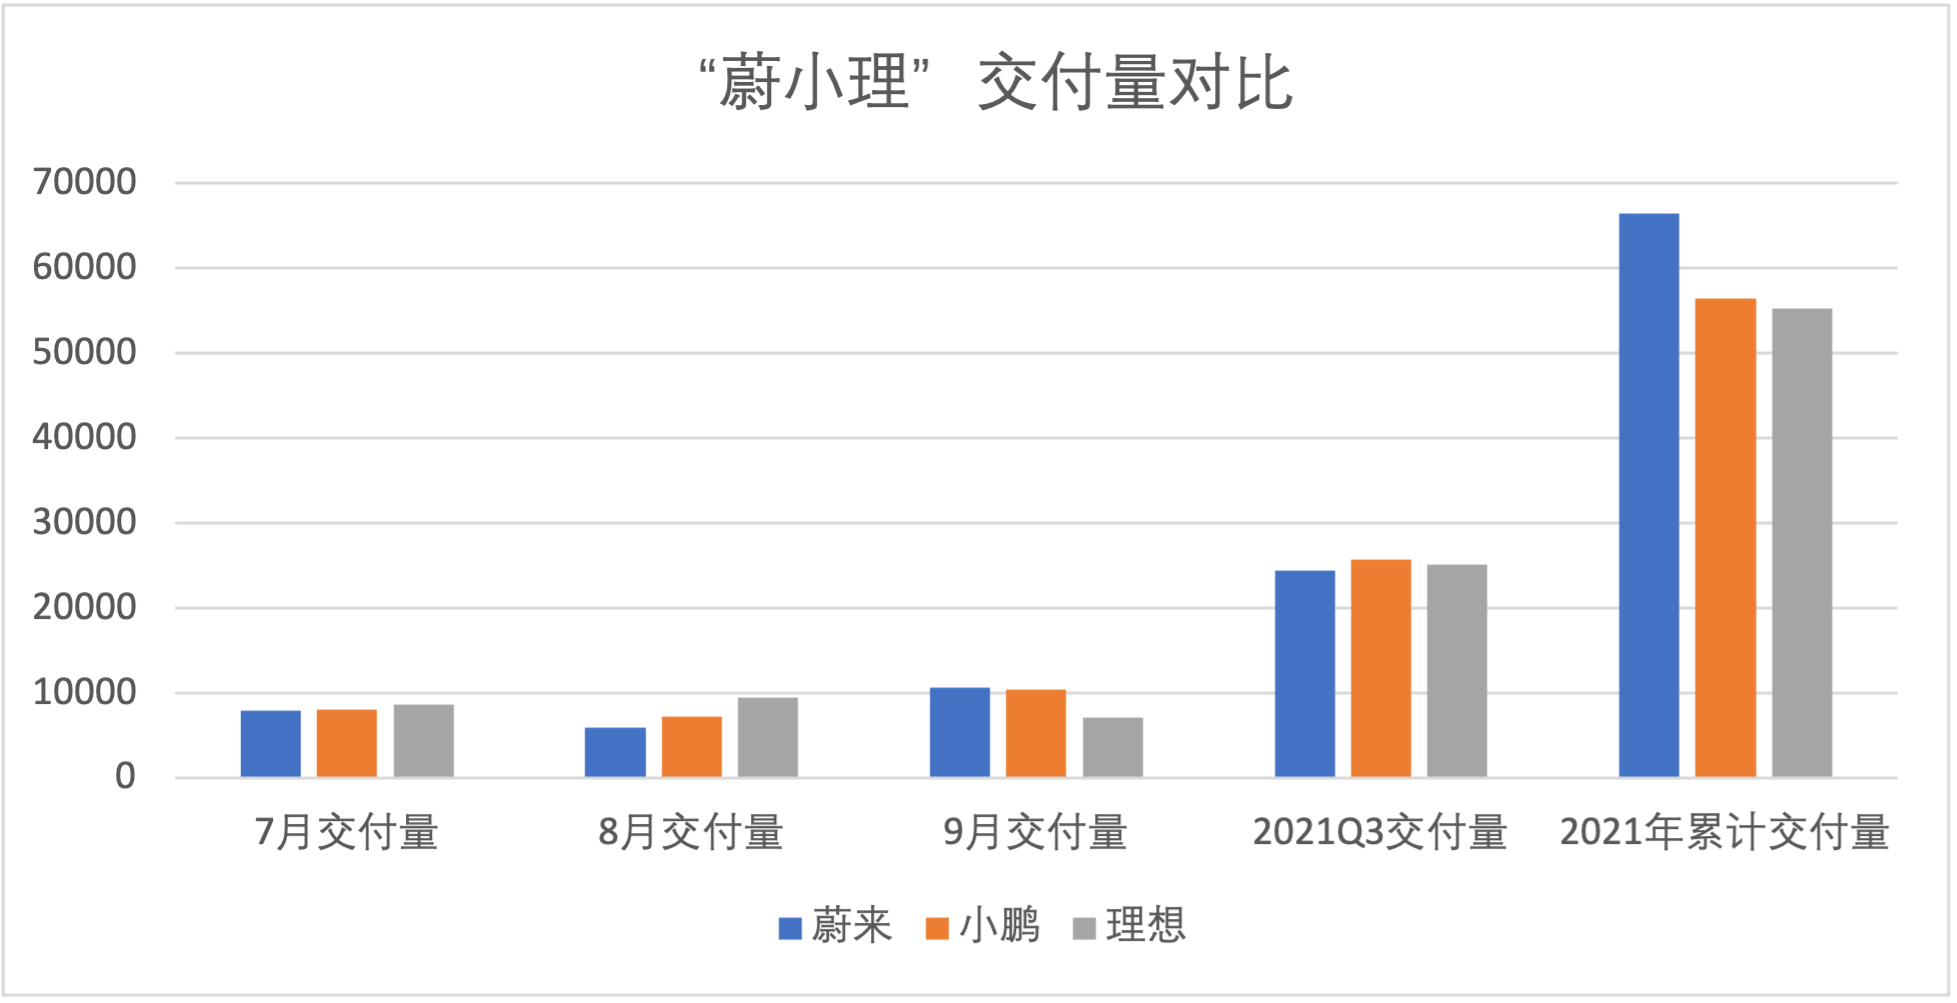 NIO and Xpeng delivered more than 10,000 units in September 2021 while Lixiang's delivery volume fell to 7,000 due to chip shortage